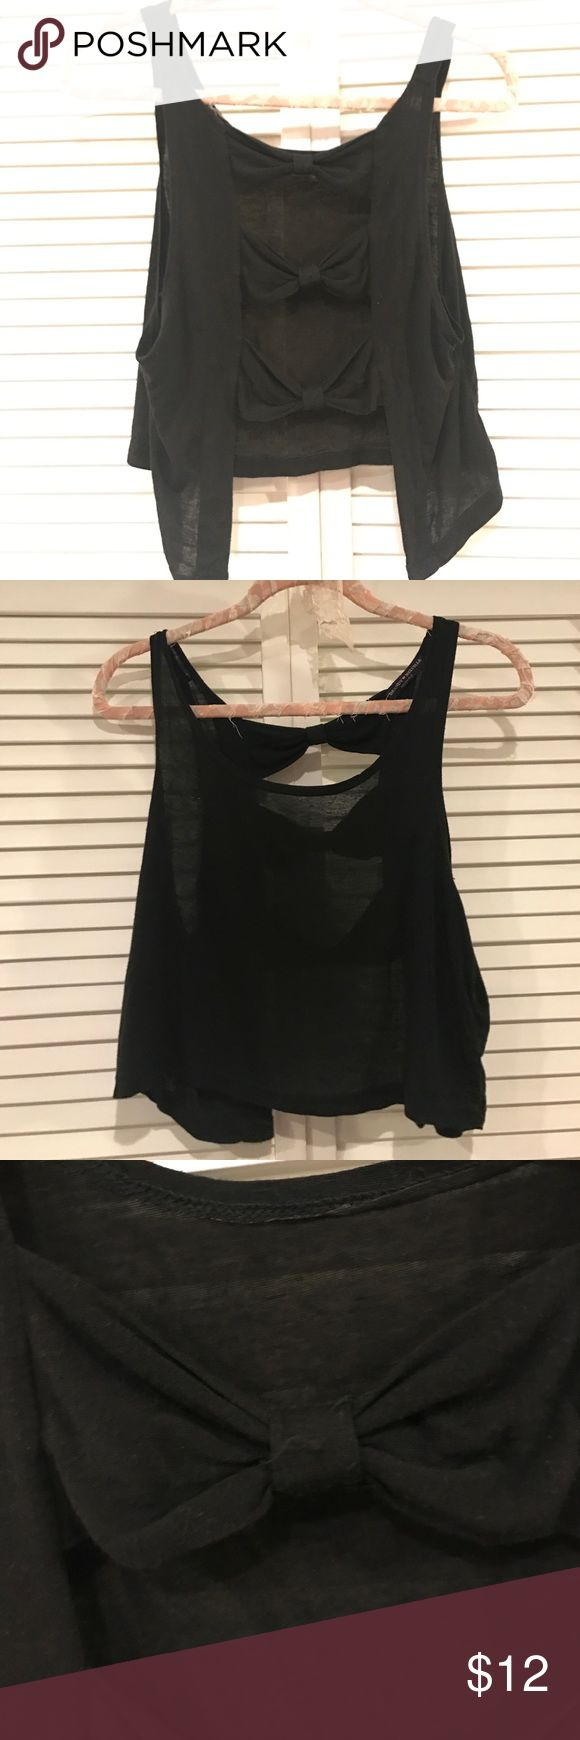 Brandy Melville Bow Back Tank Black BM tank with bows in the back. Great condition. Loose fit. One size fits most. Brandy Melville Tops Tank Tops